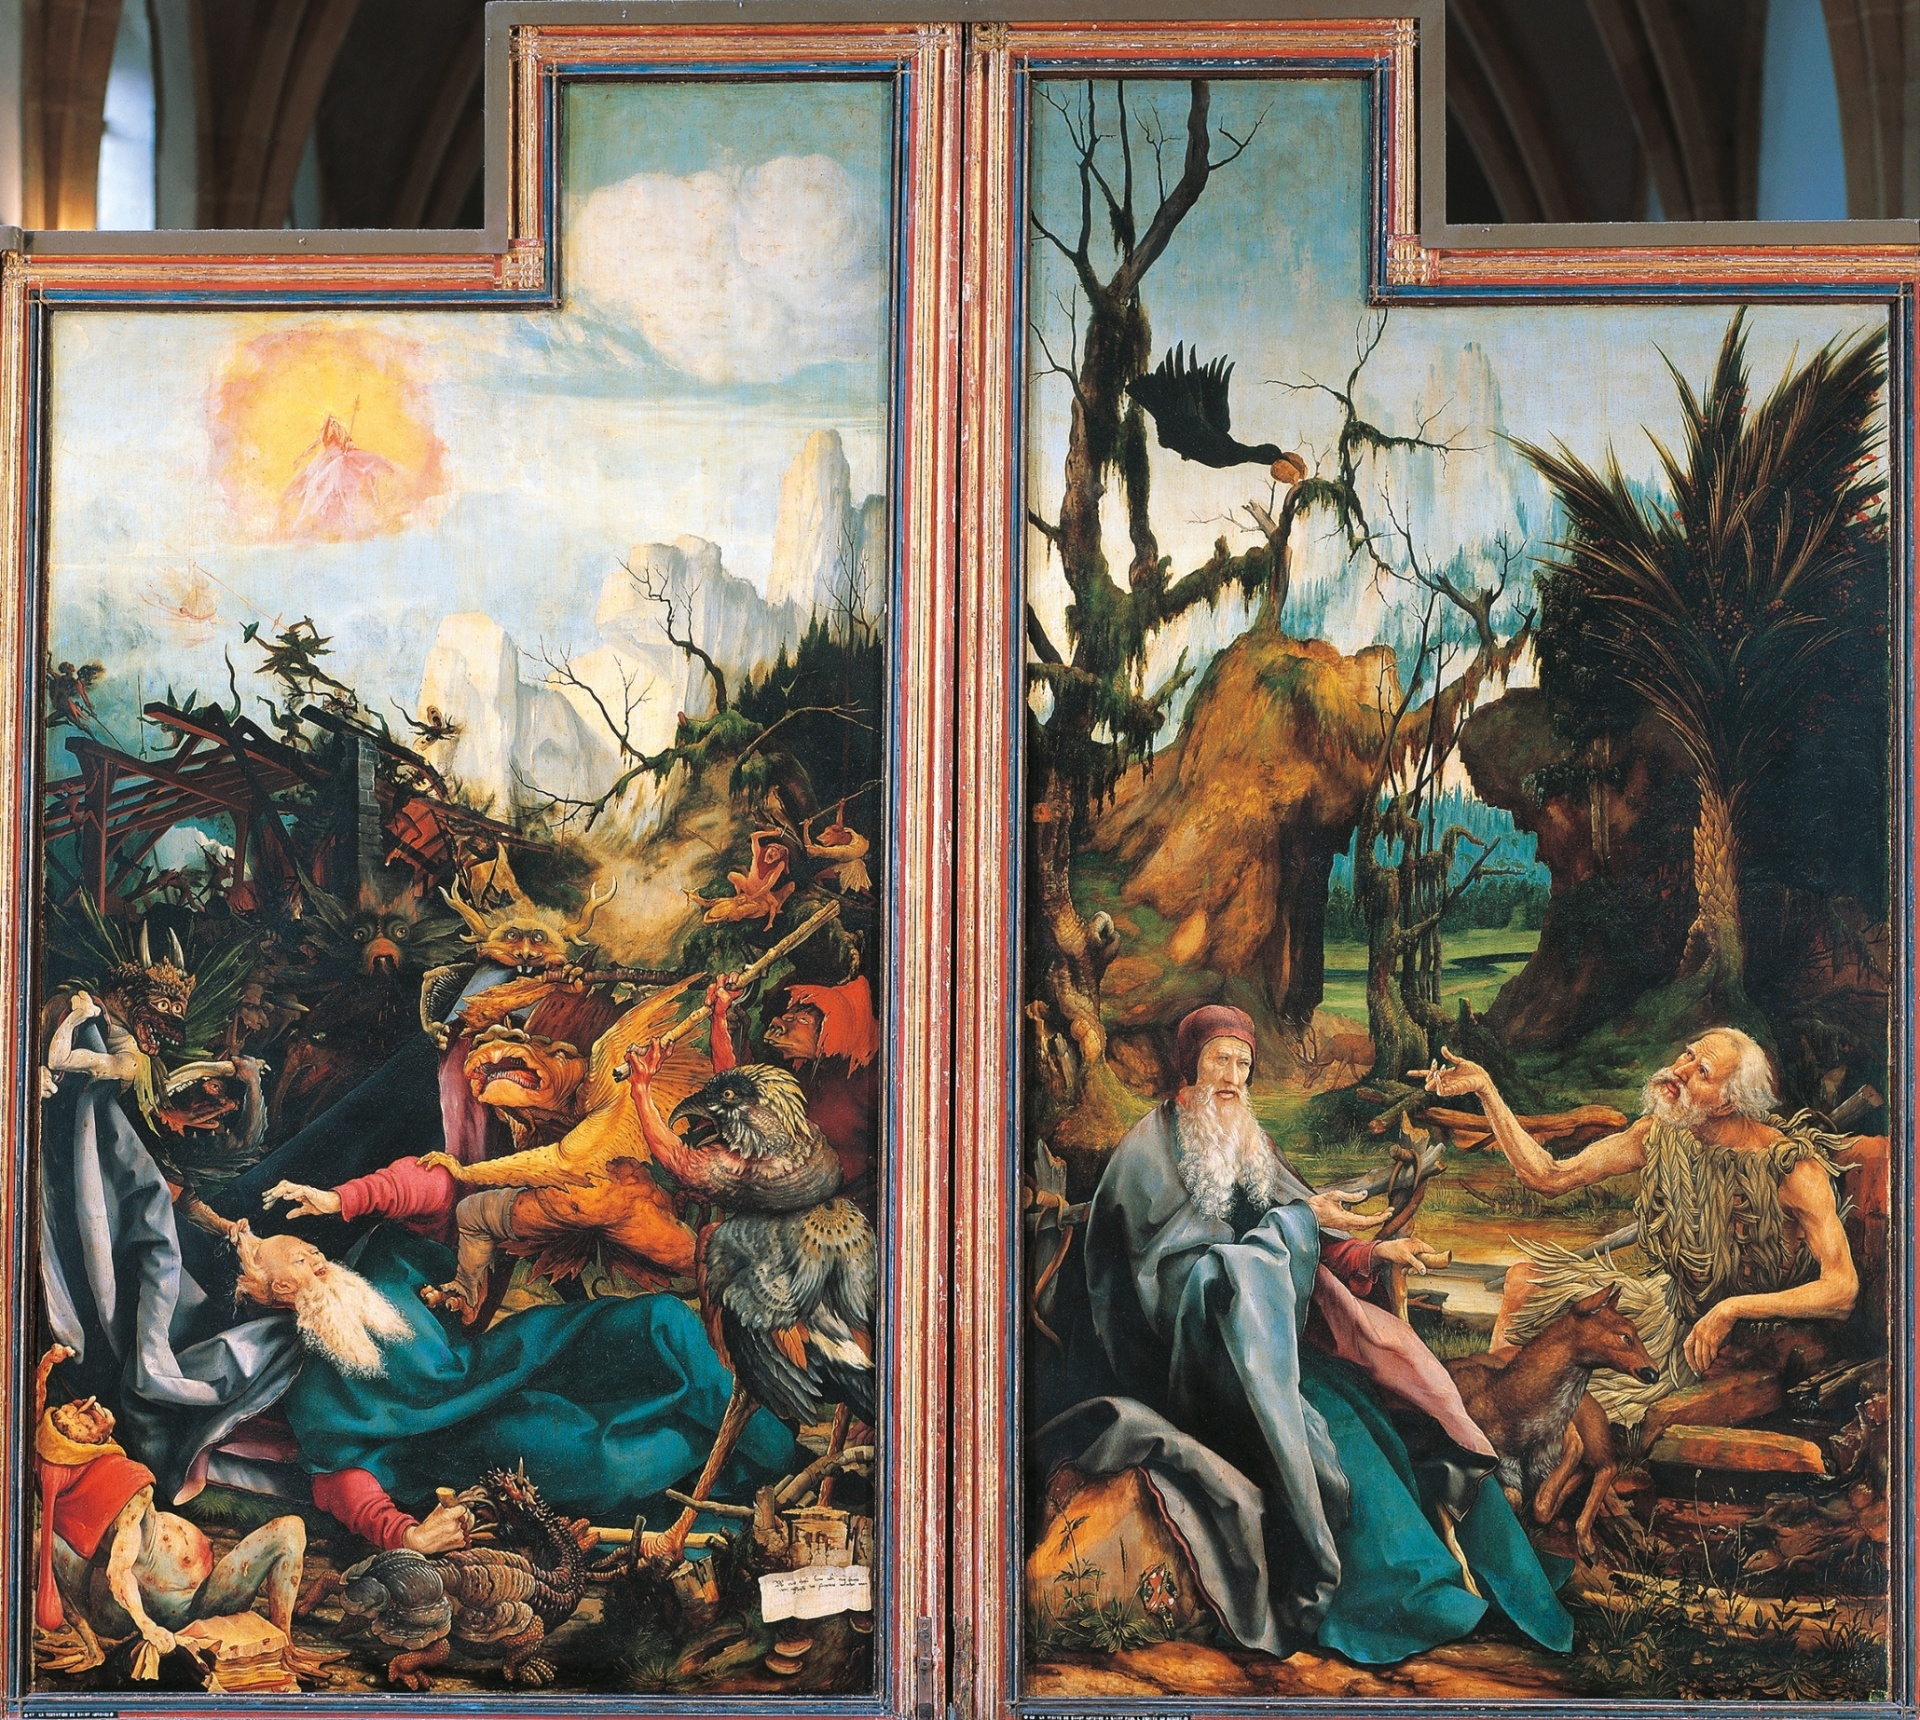 Matthias Grunewald – The Temptation of St. Anthony (c. 1512 - 16)